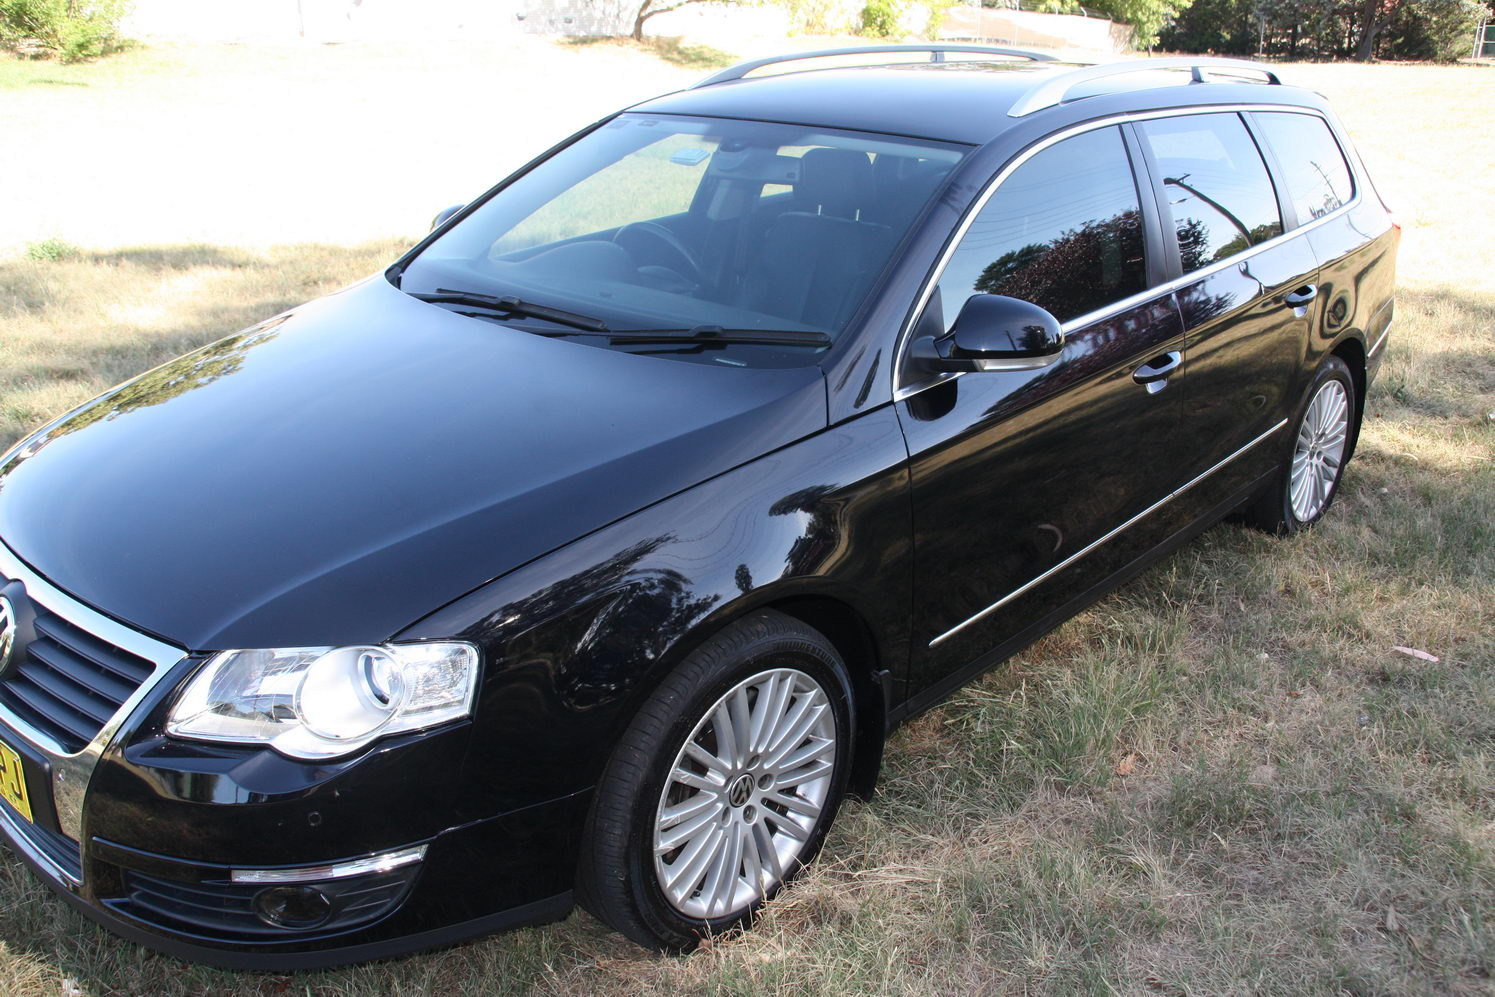 2006 volkswagen passat 3 2 v6 fsi 3c car sales nsw. Black Bedroom Furniture Sets. Home Design Ideas